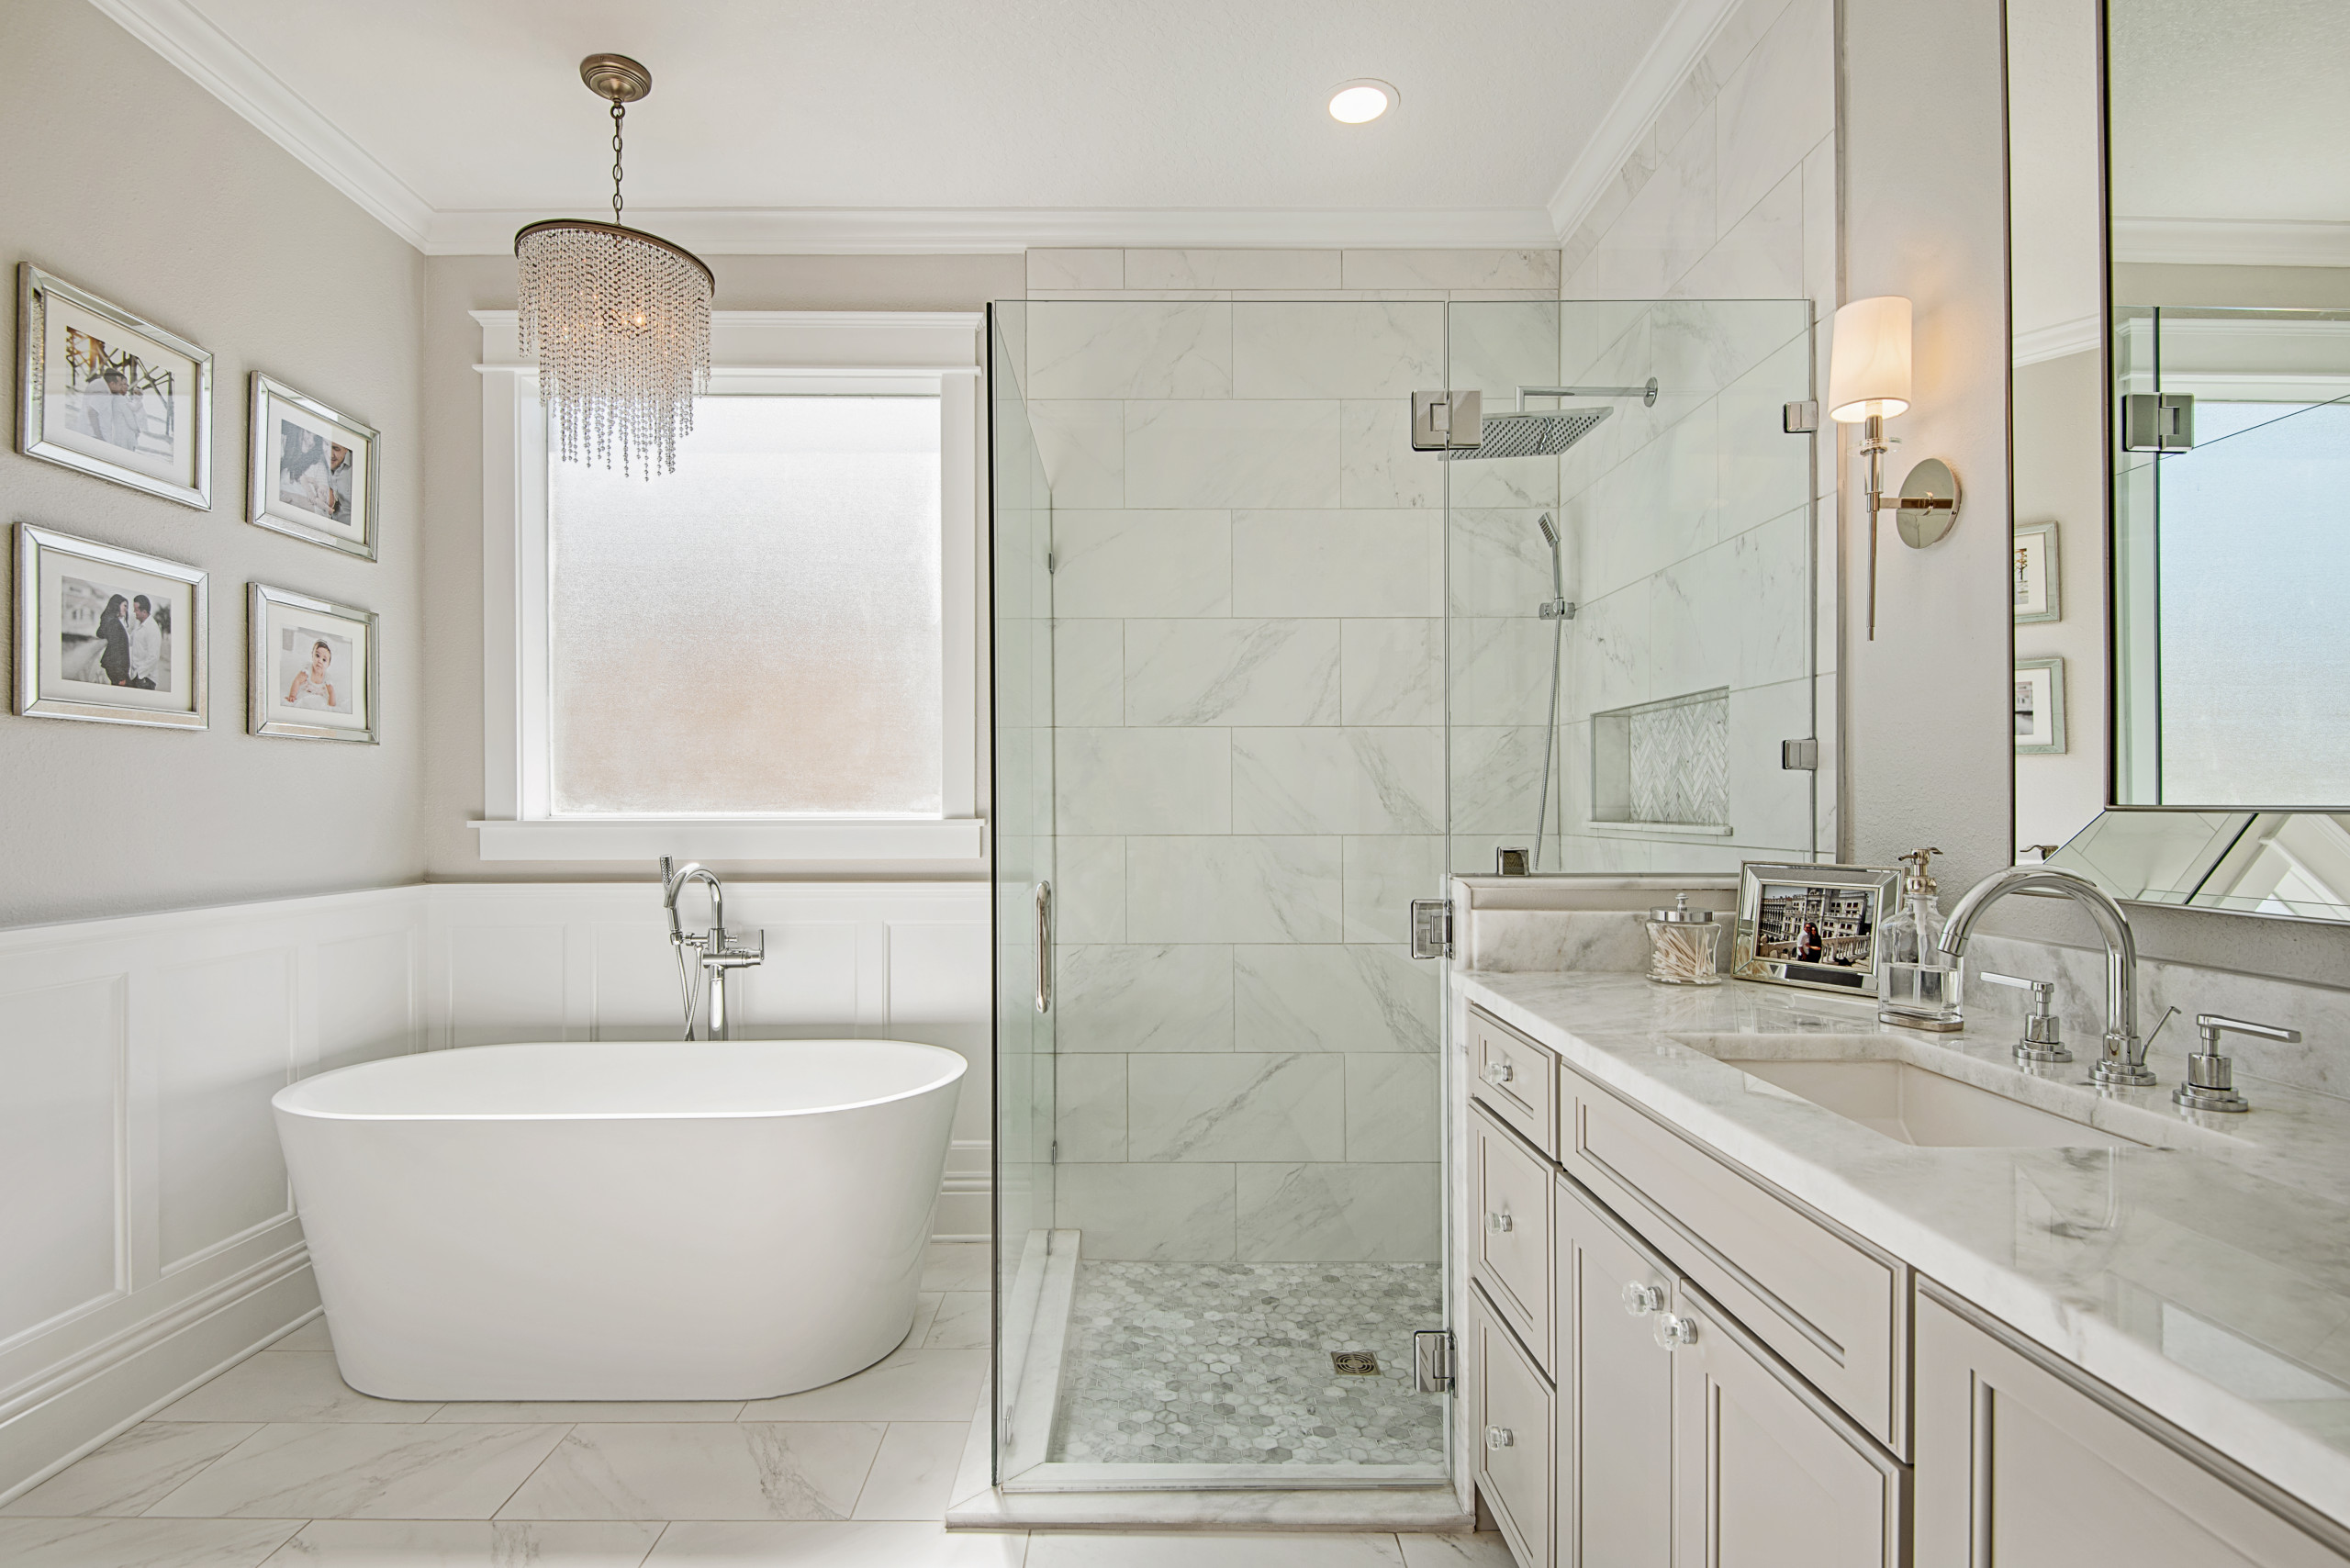 75 Beautiful Corner Shower With A Hot Tub Pictures Ideas December 2020 Houzz